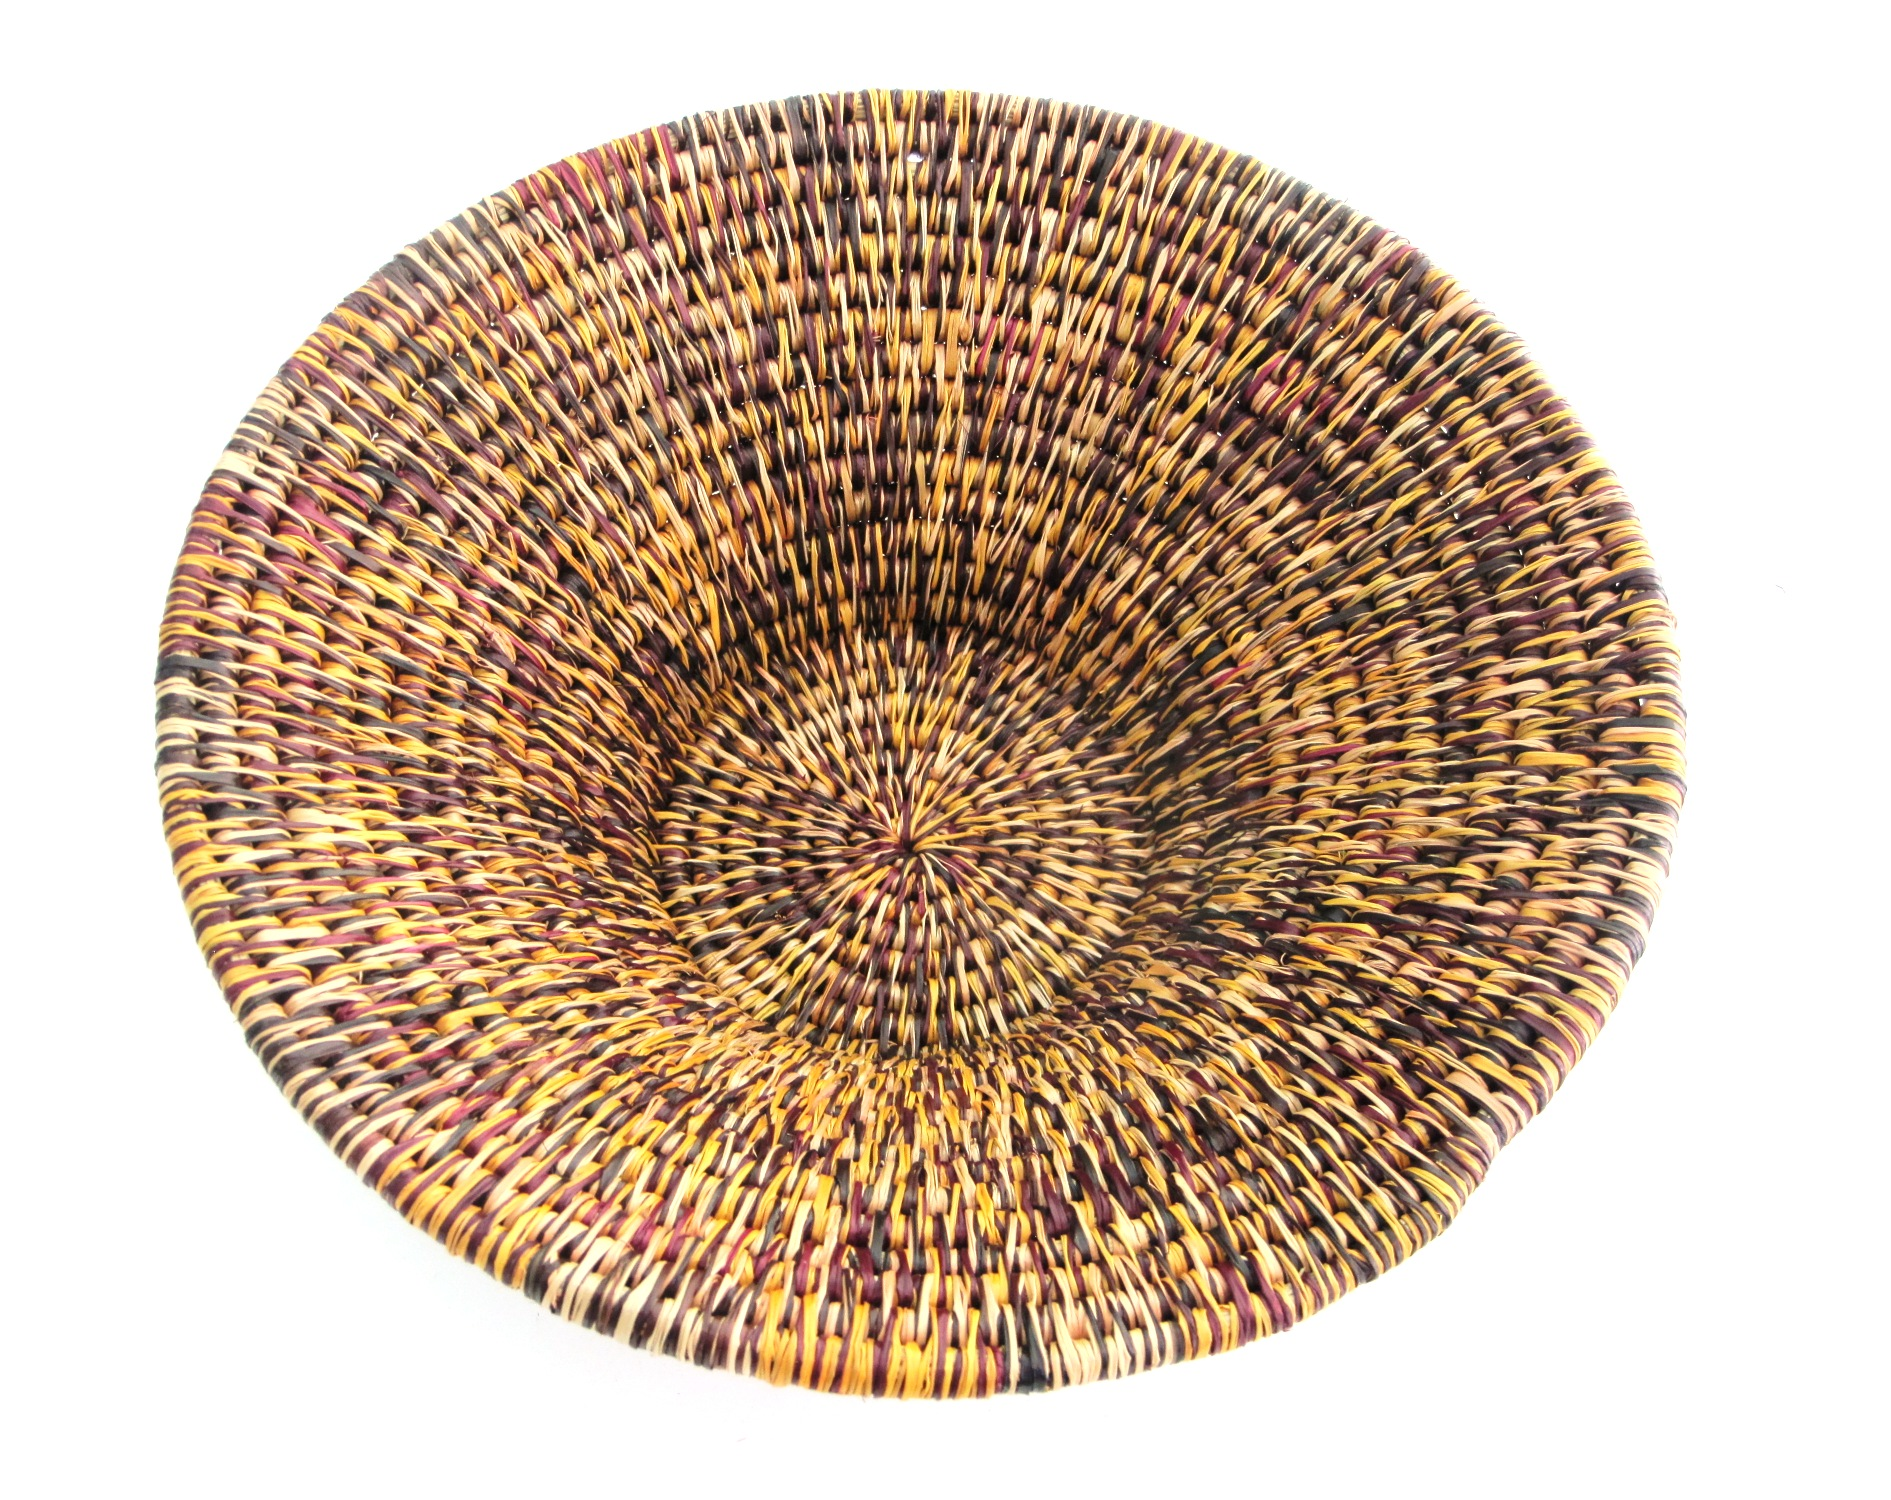 Lutindzi Baskets from Swaziland